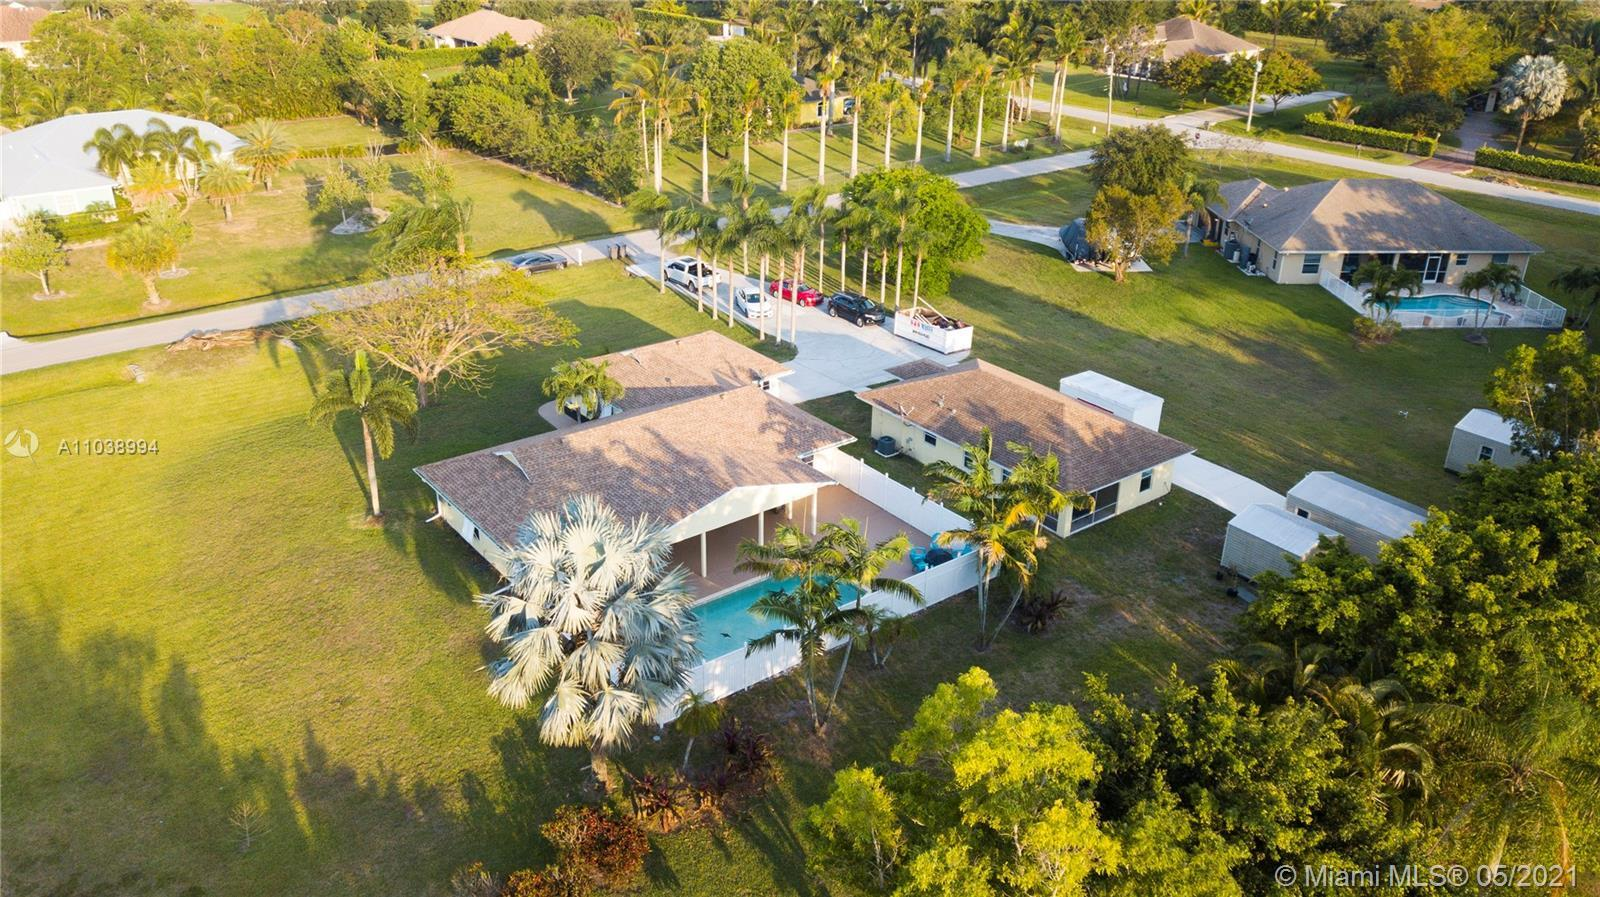 A long driveway flanked by royal palms lead to this gem with a spacious setback,on a 1+ acre lot. On